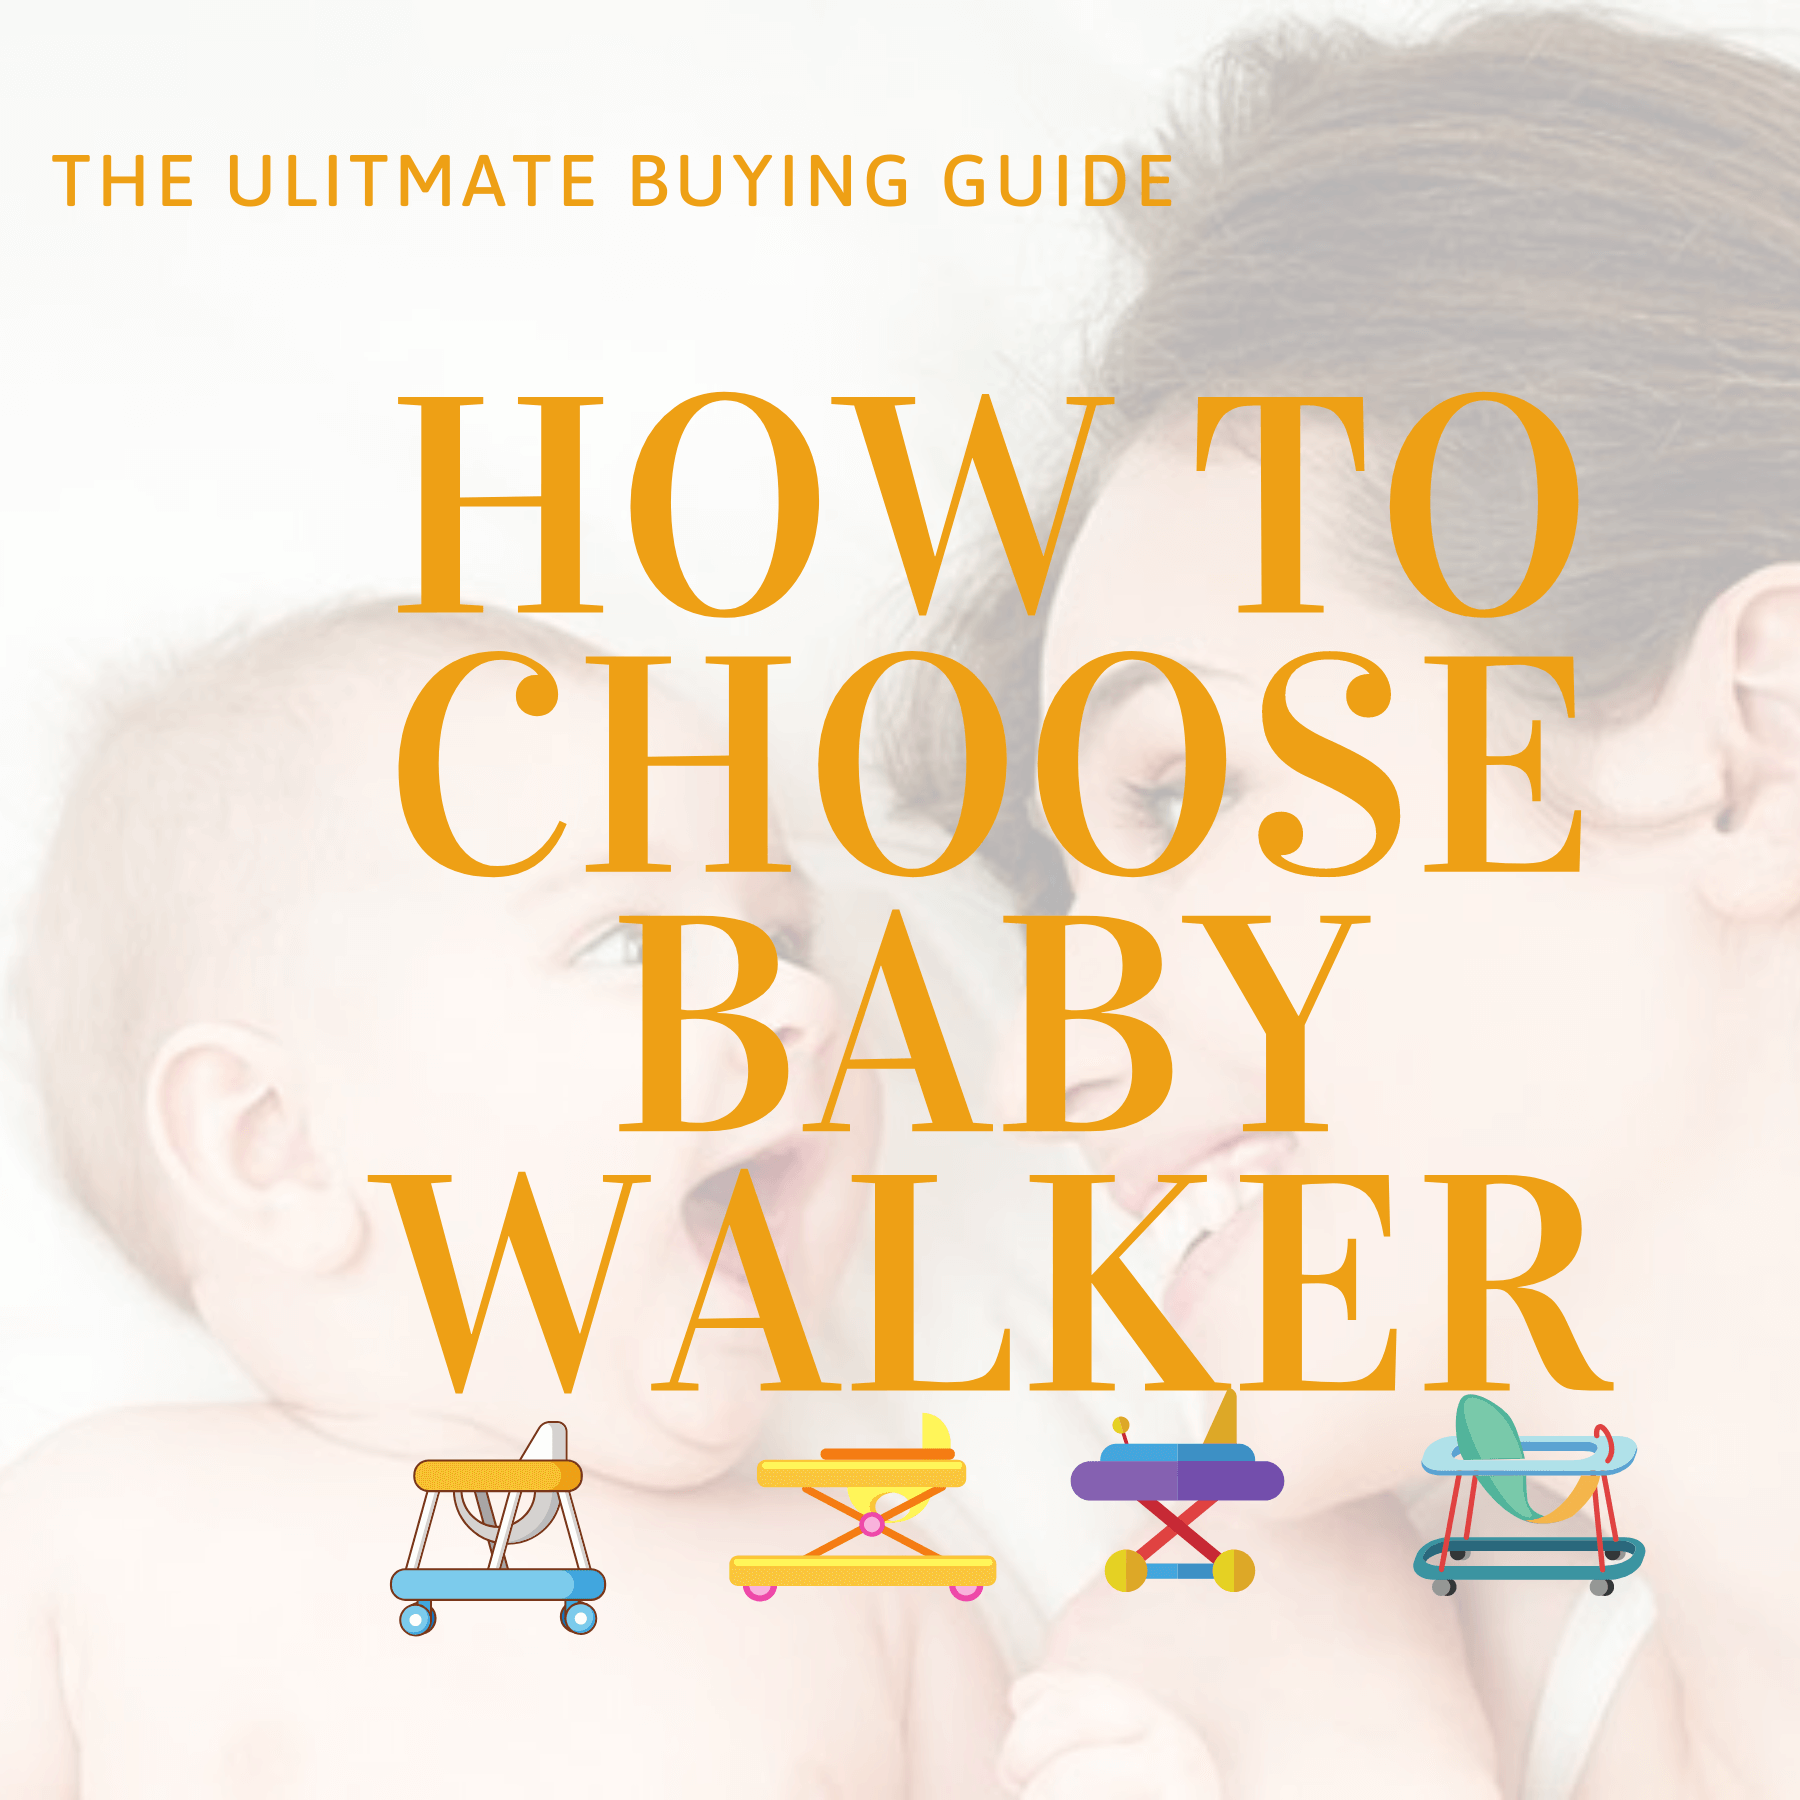 How to buy Baby walker